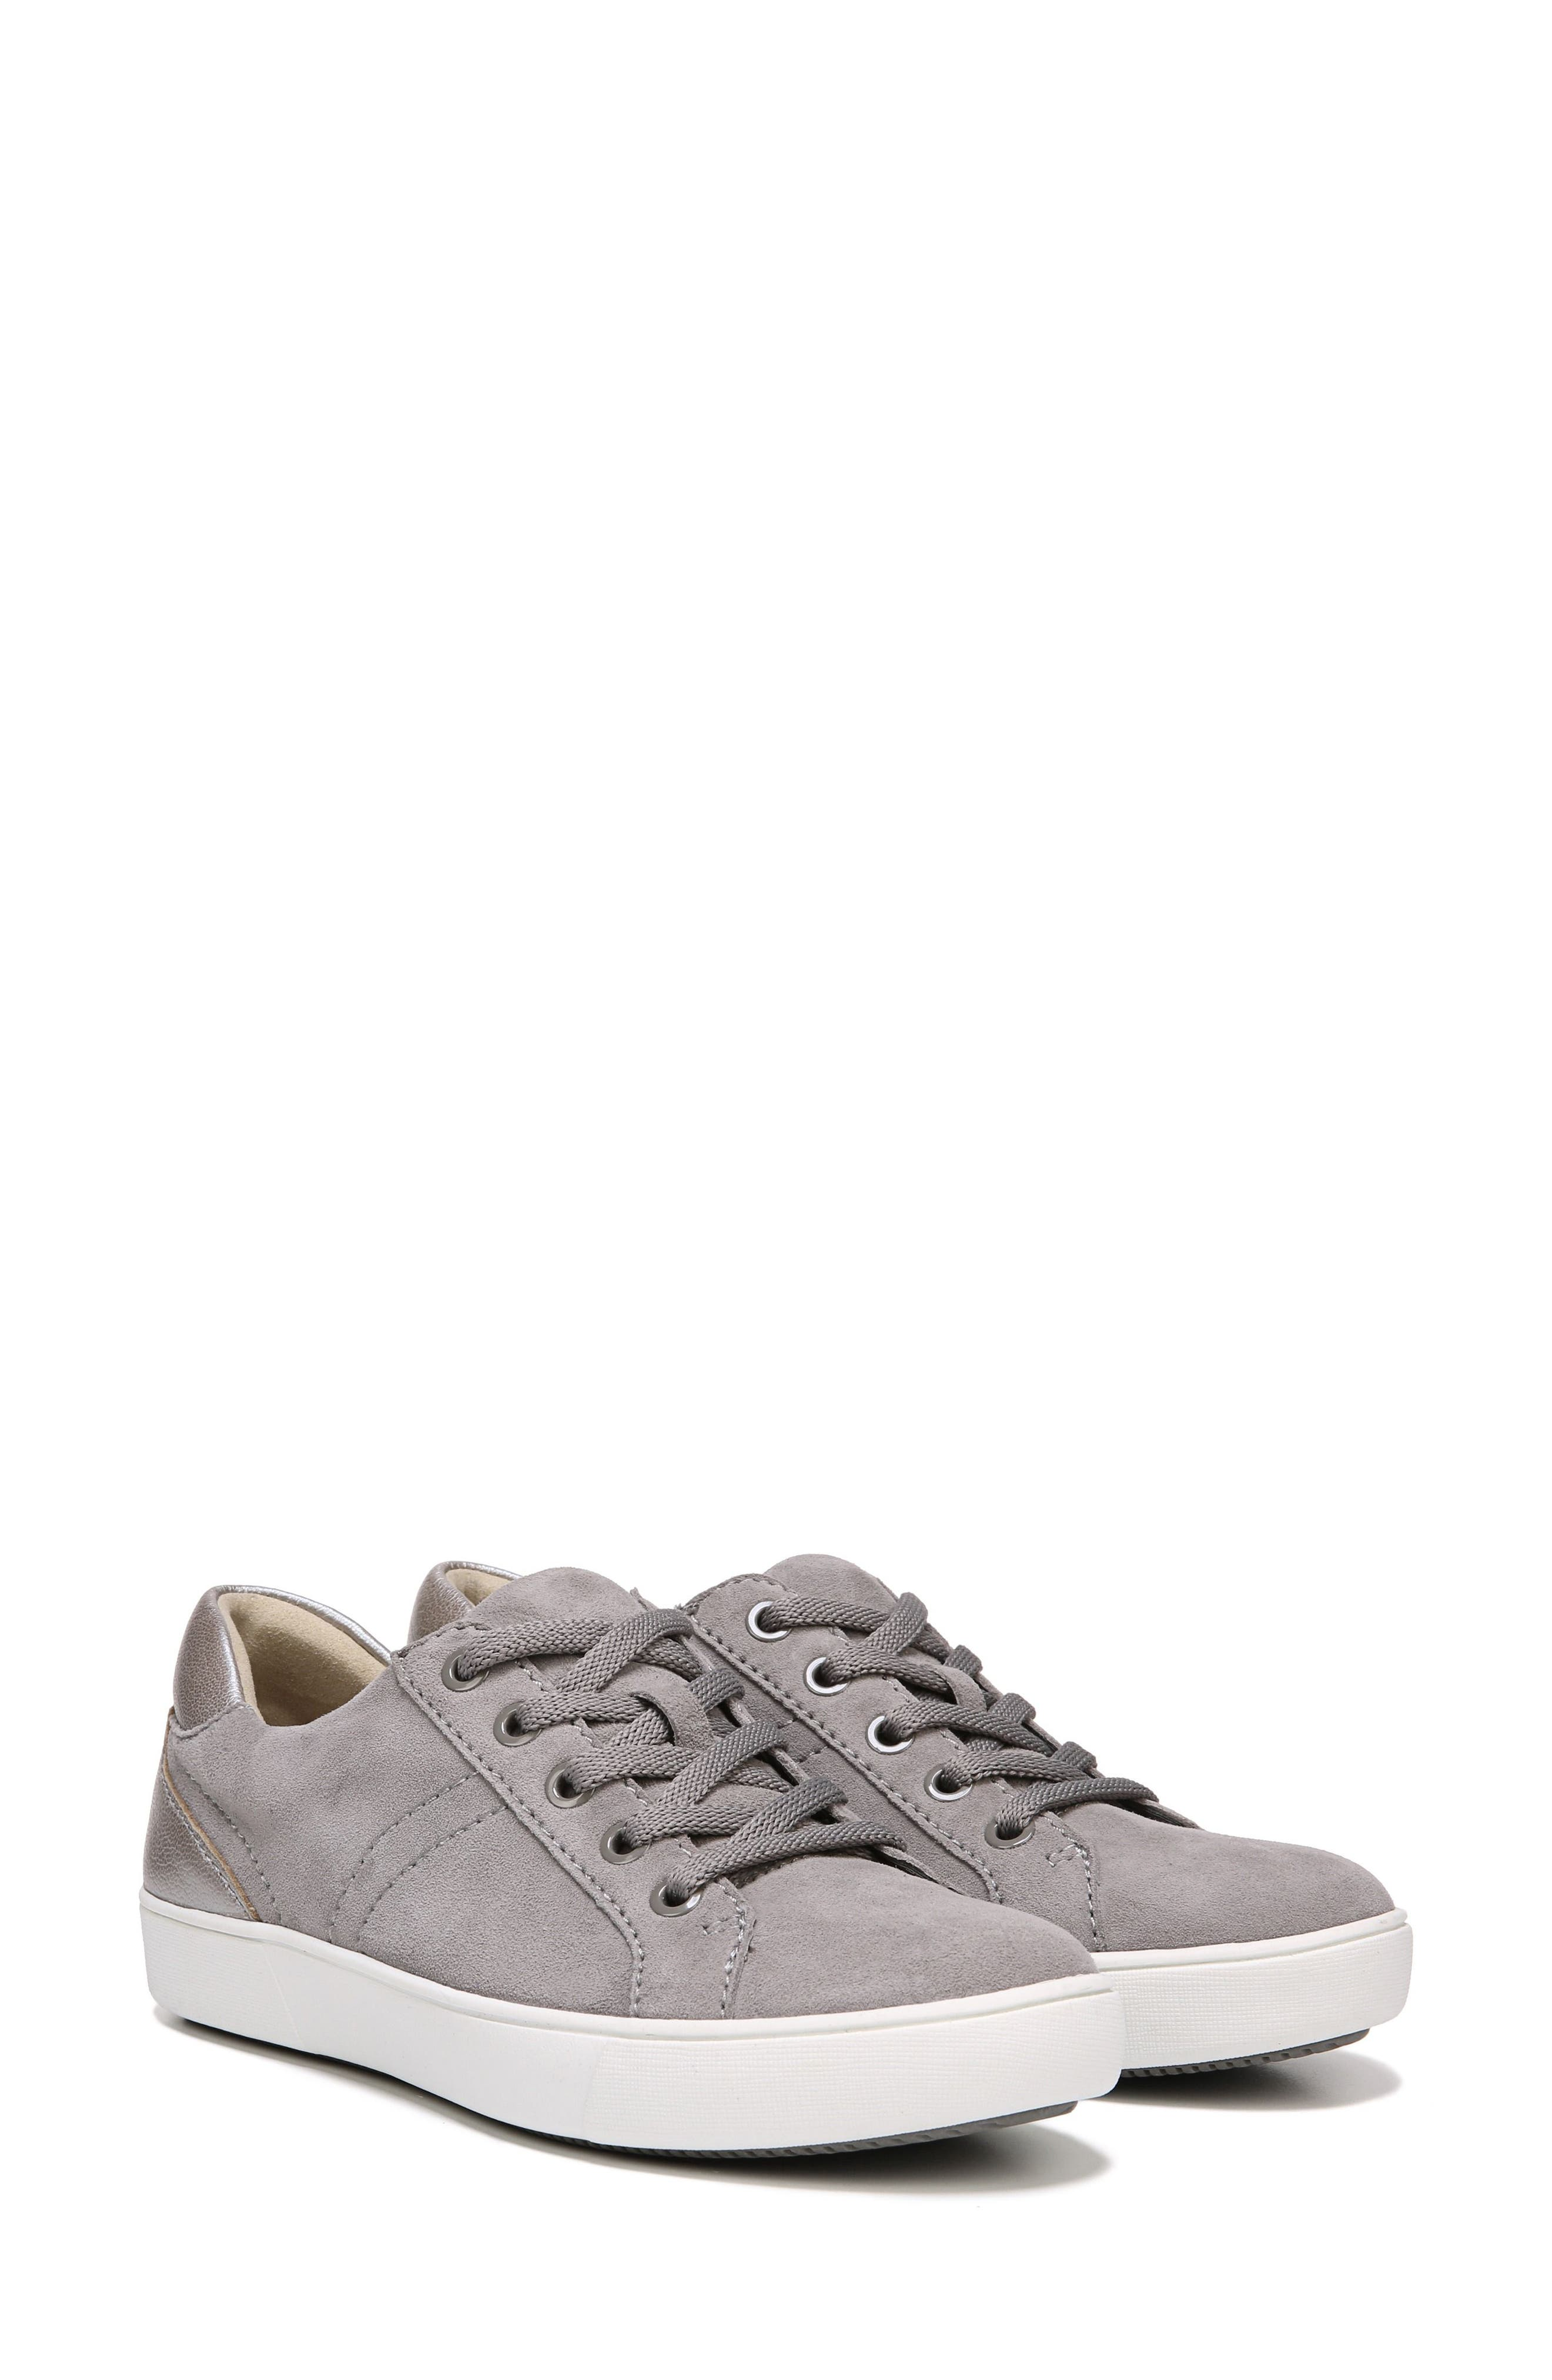 NATURALIZER,                             Morrison Sneaker,                             Alternate thumbnail 7, color,                             GREY SUEDE